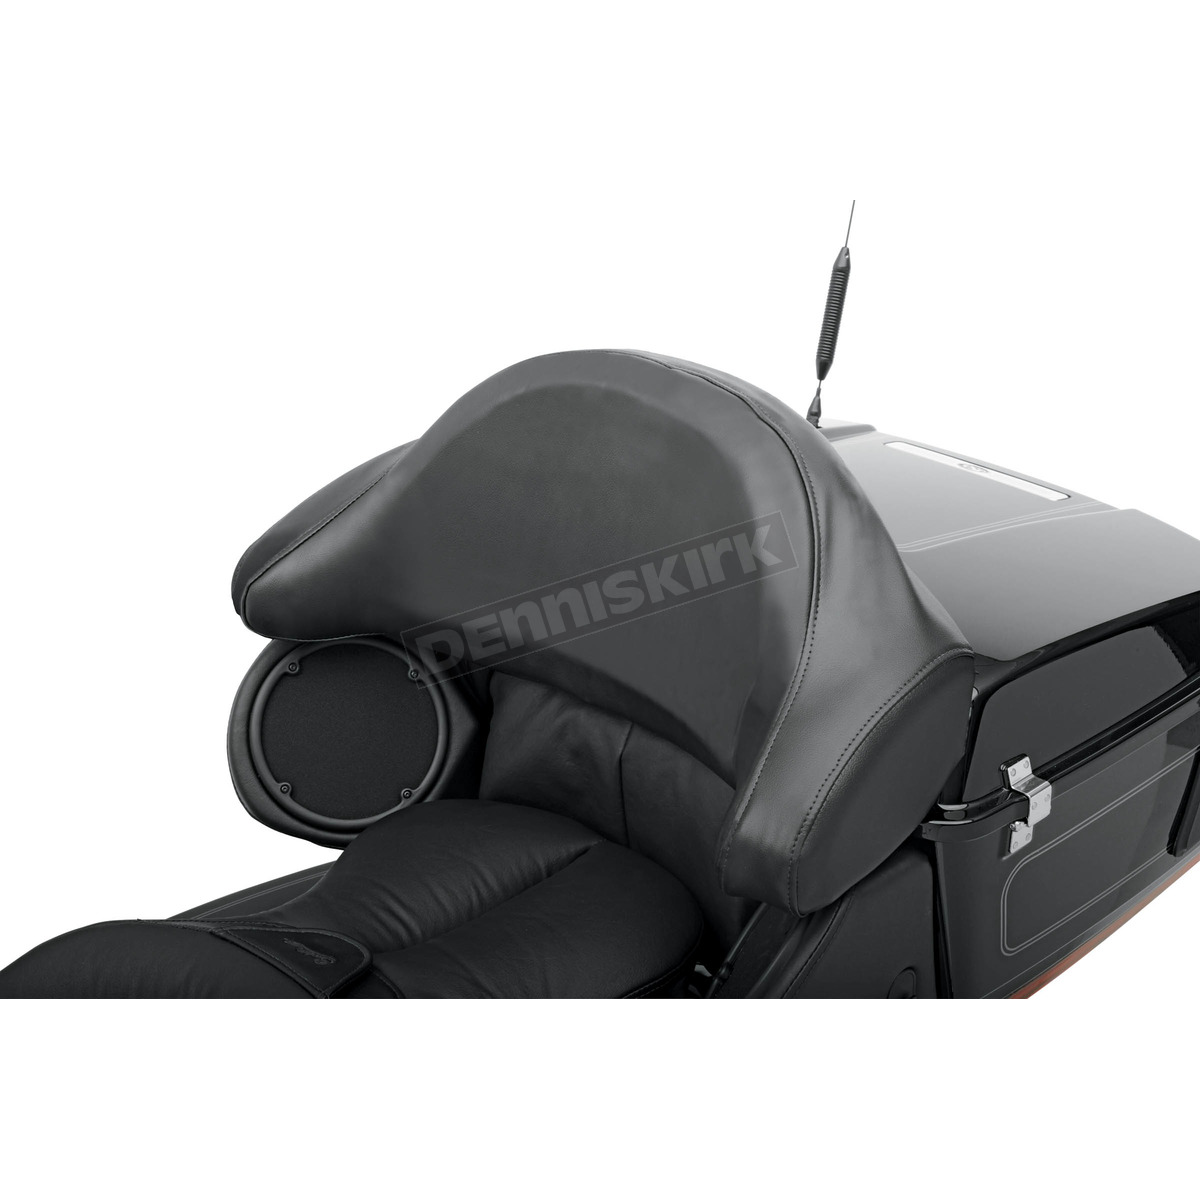 road sofa seat goldwing square wooden legs saddlemen tour pak backrest pad cover for deluxe